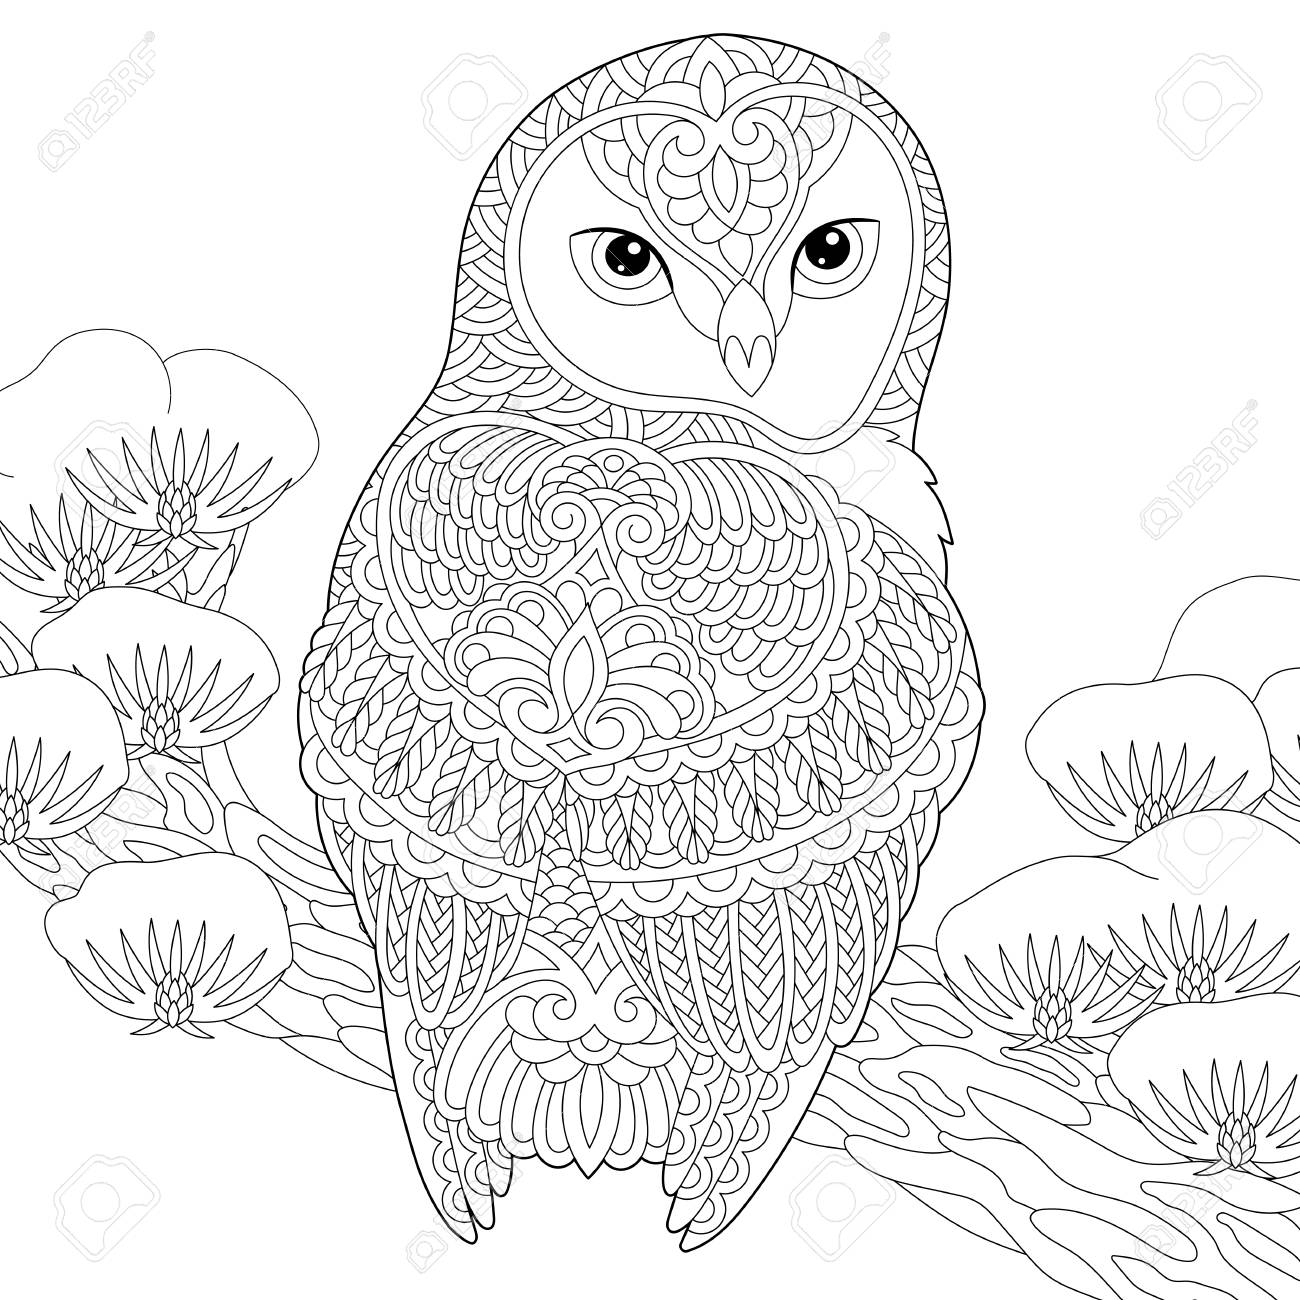 - Coloring Page. Coloring Book. Anti Stress Colouring Picture With